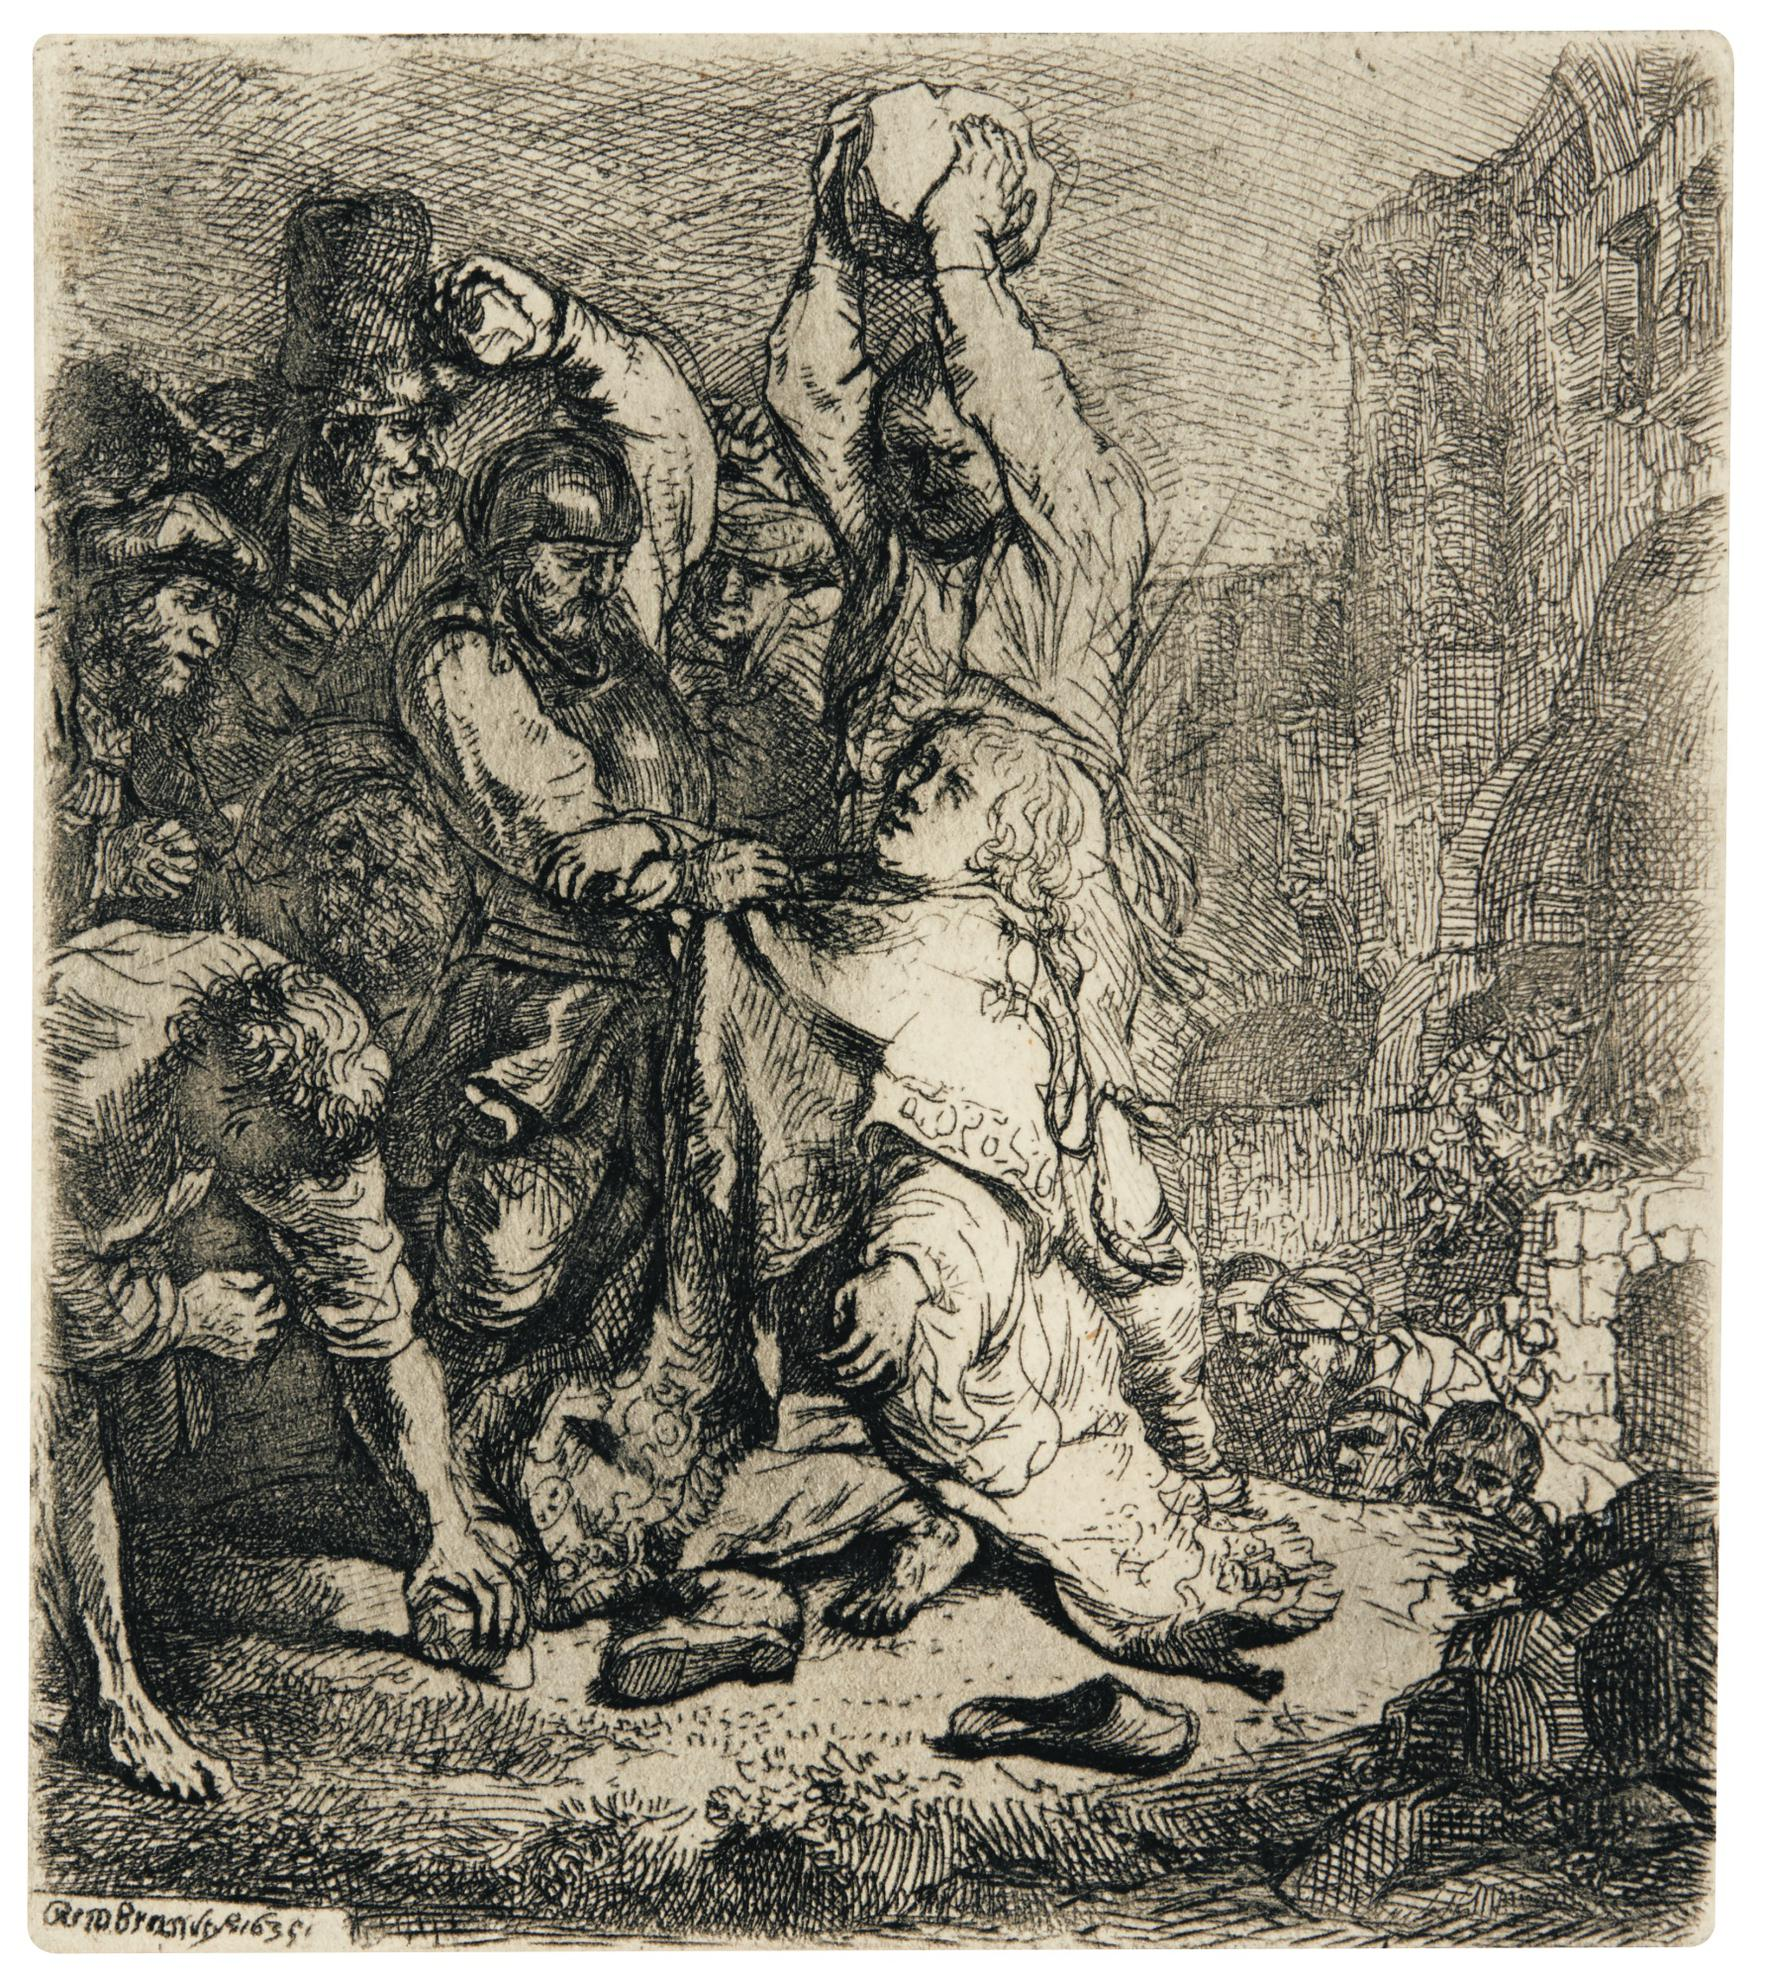 Rembrandt van Rijn-The Stoning Of St Stephen (B., Holl. 97; New Holl. 140; H. 125); The Presentation in the Temple: Oblong Print (New Holl. 184); The Virgin and Child with the Cat and the Snake (New Holl. 278)-1654